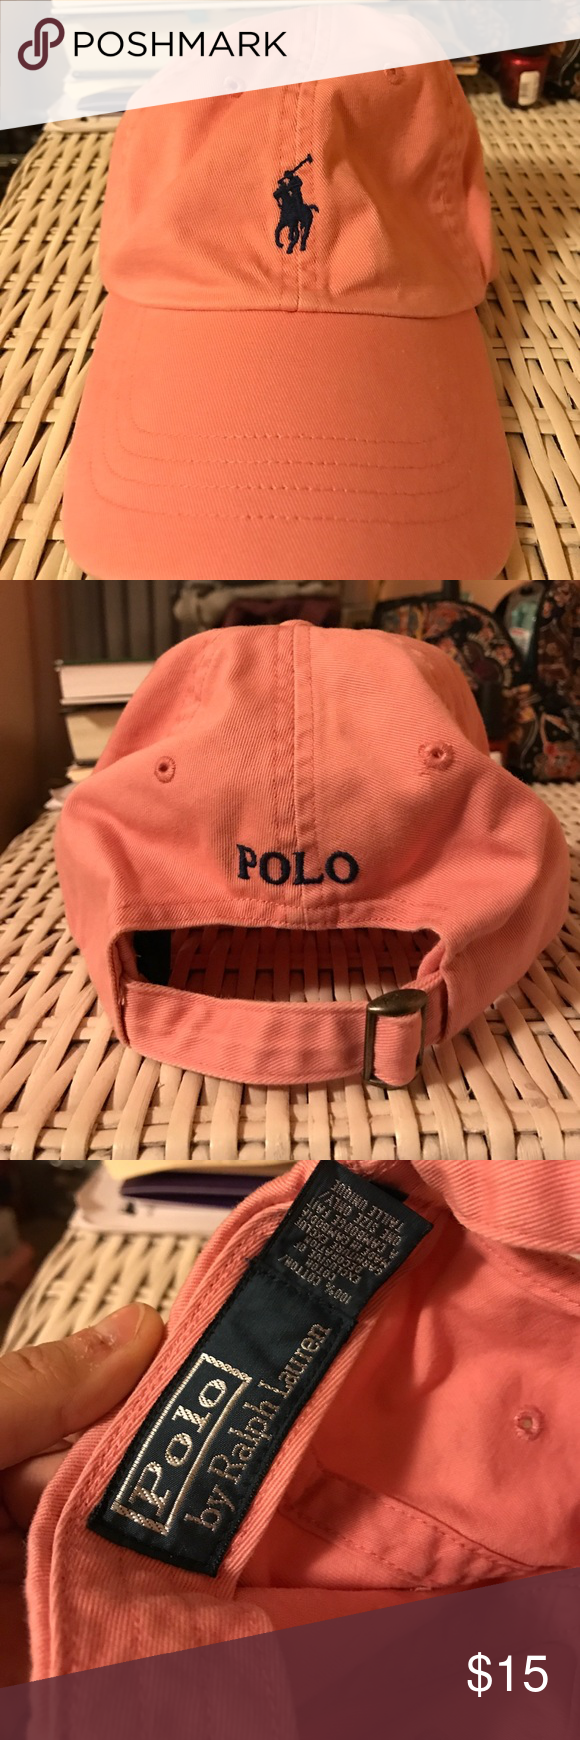 Pink Polo Hat Pink Ralph Lauren Polo hat. Never worn! Brand new condition. No stains or fading. Polo by Ralph Lauren Accessories Hats